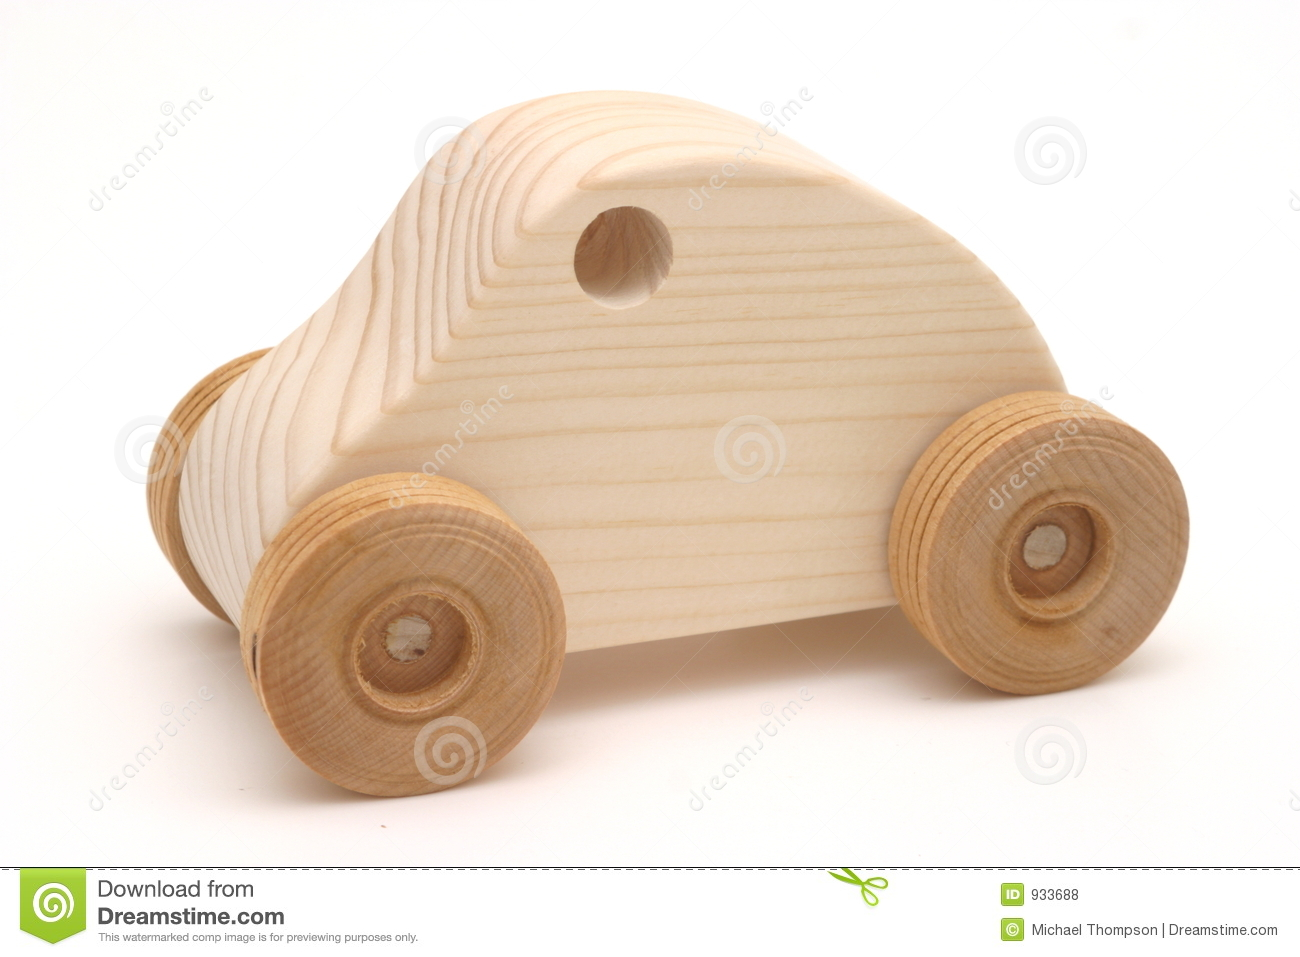 Wooden Toy Car Isolation.